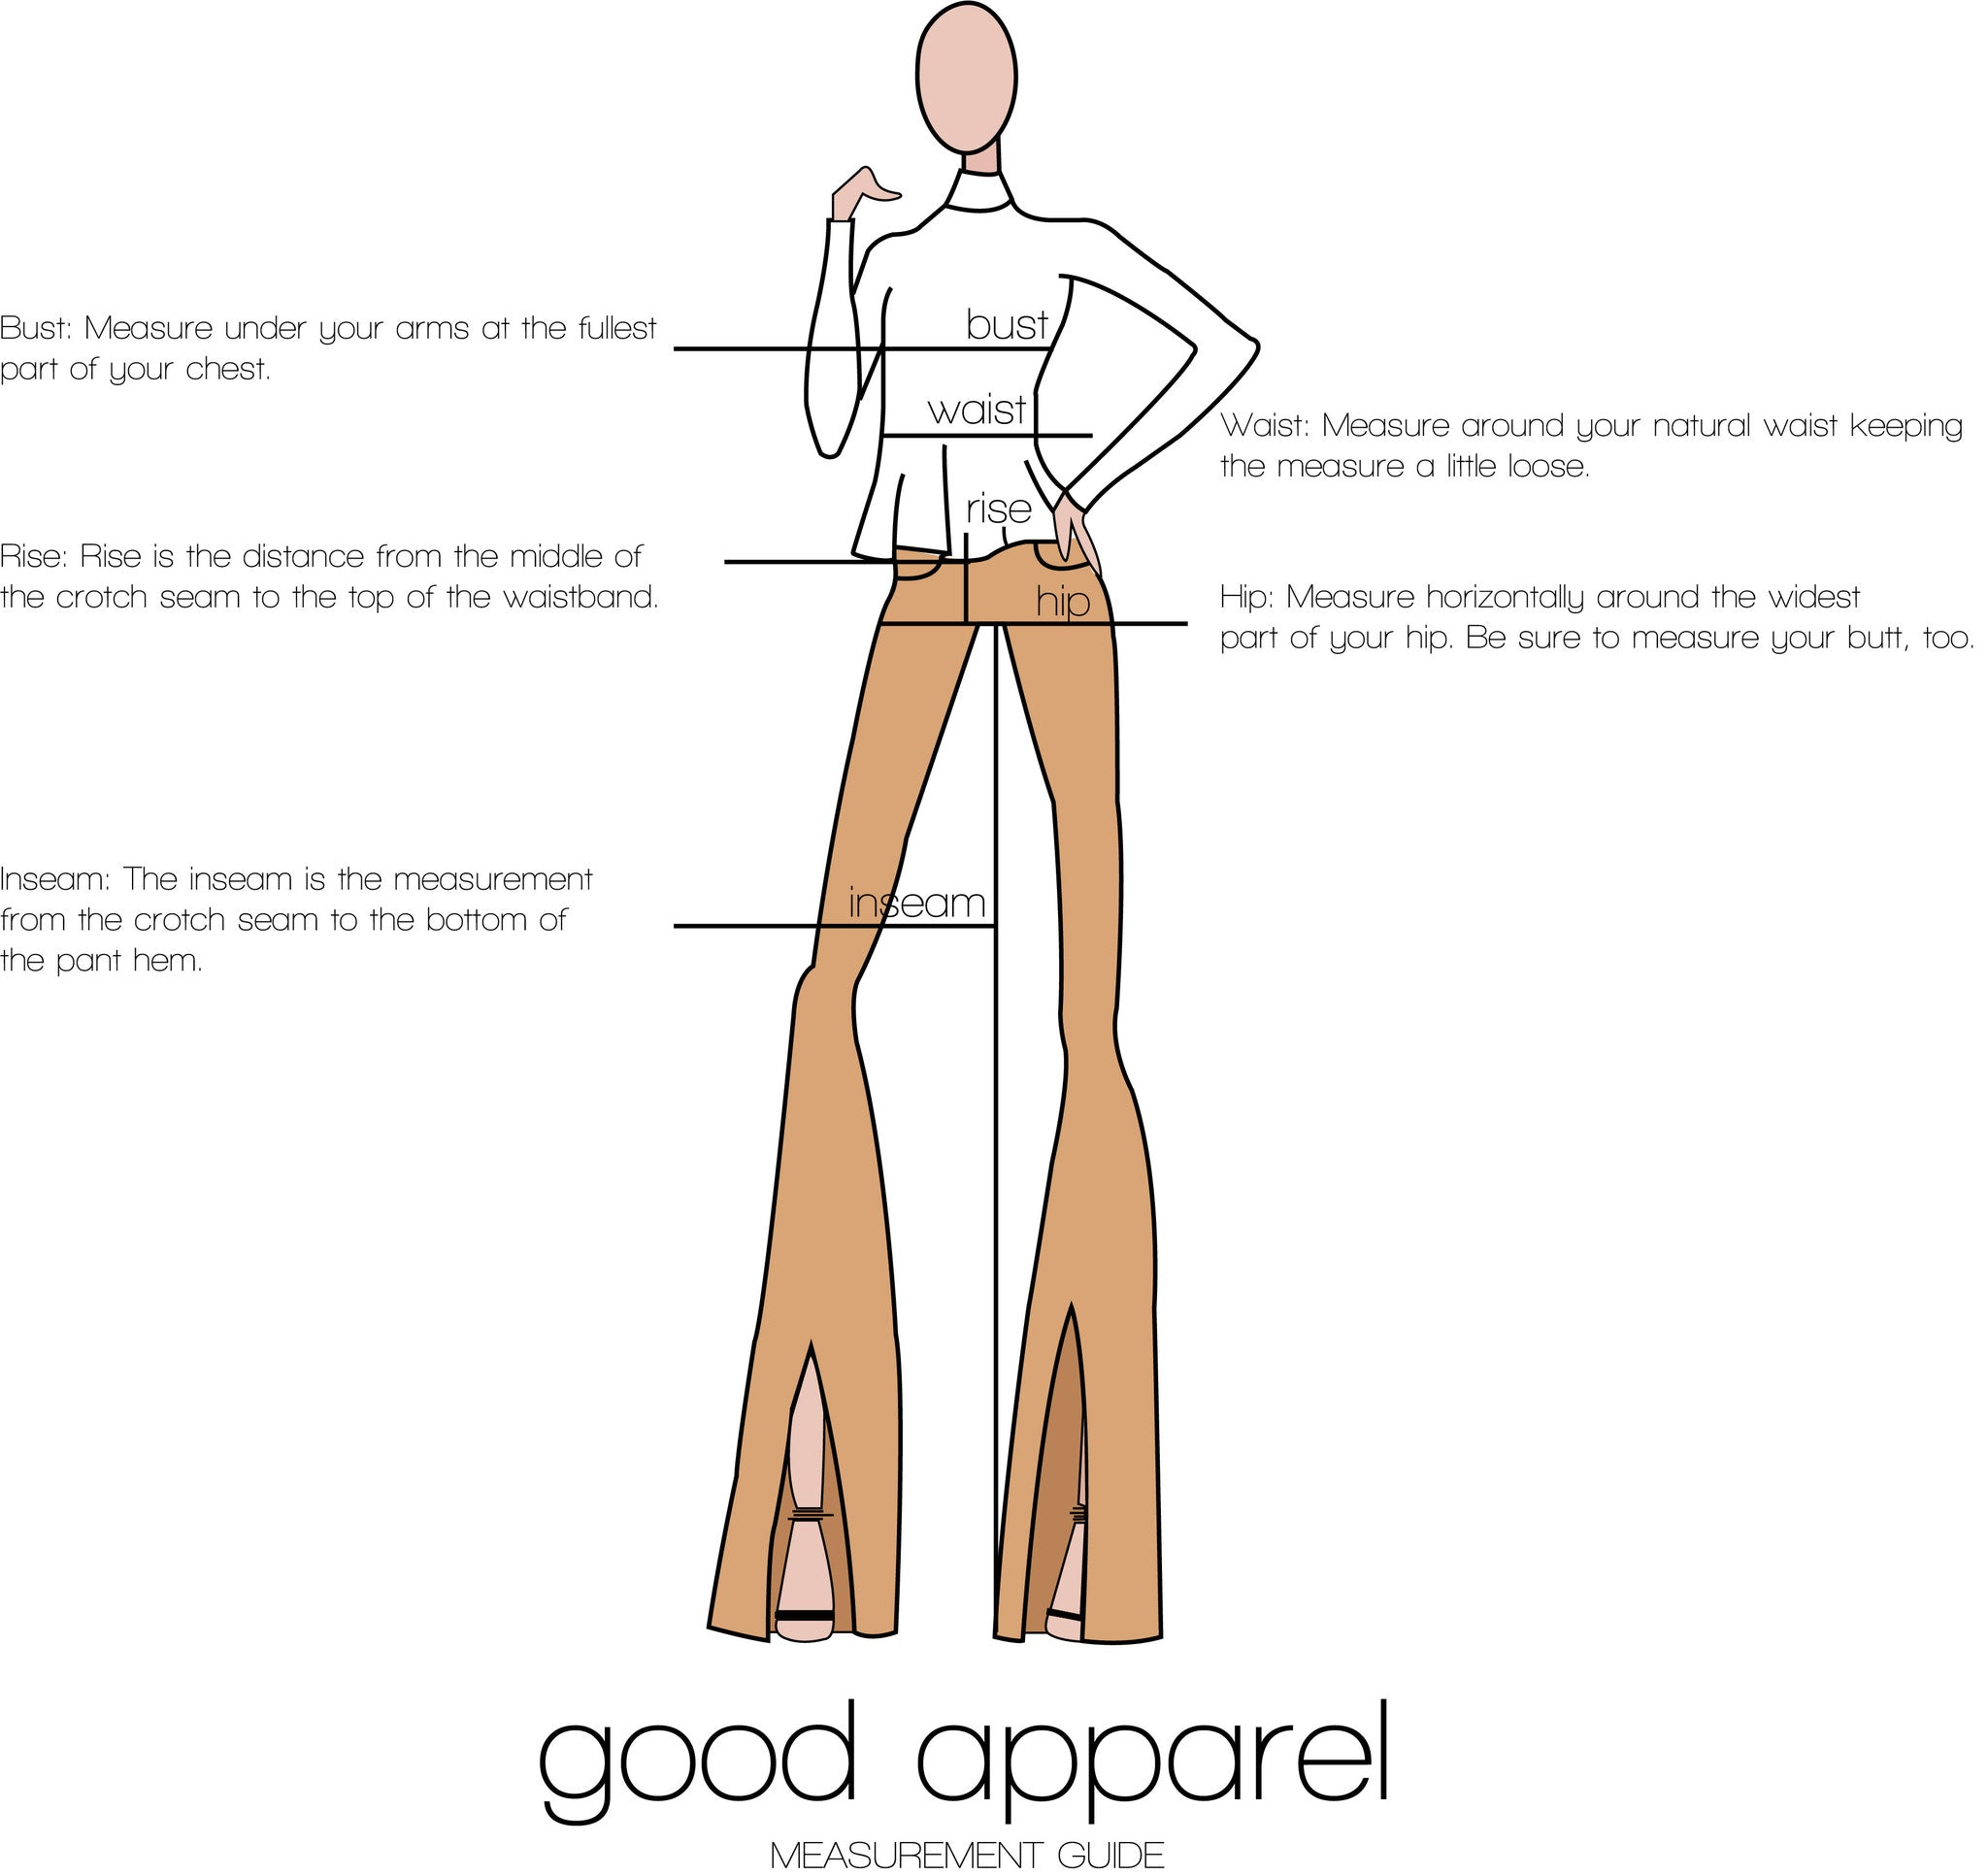 Good Apparel measurement guide